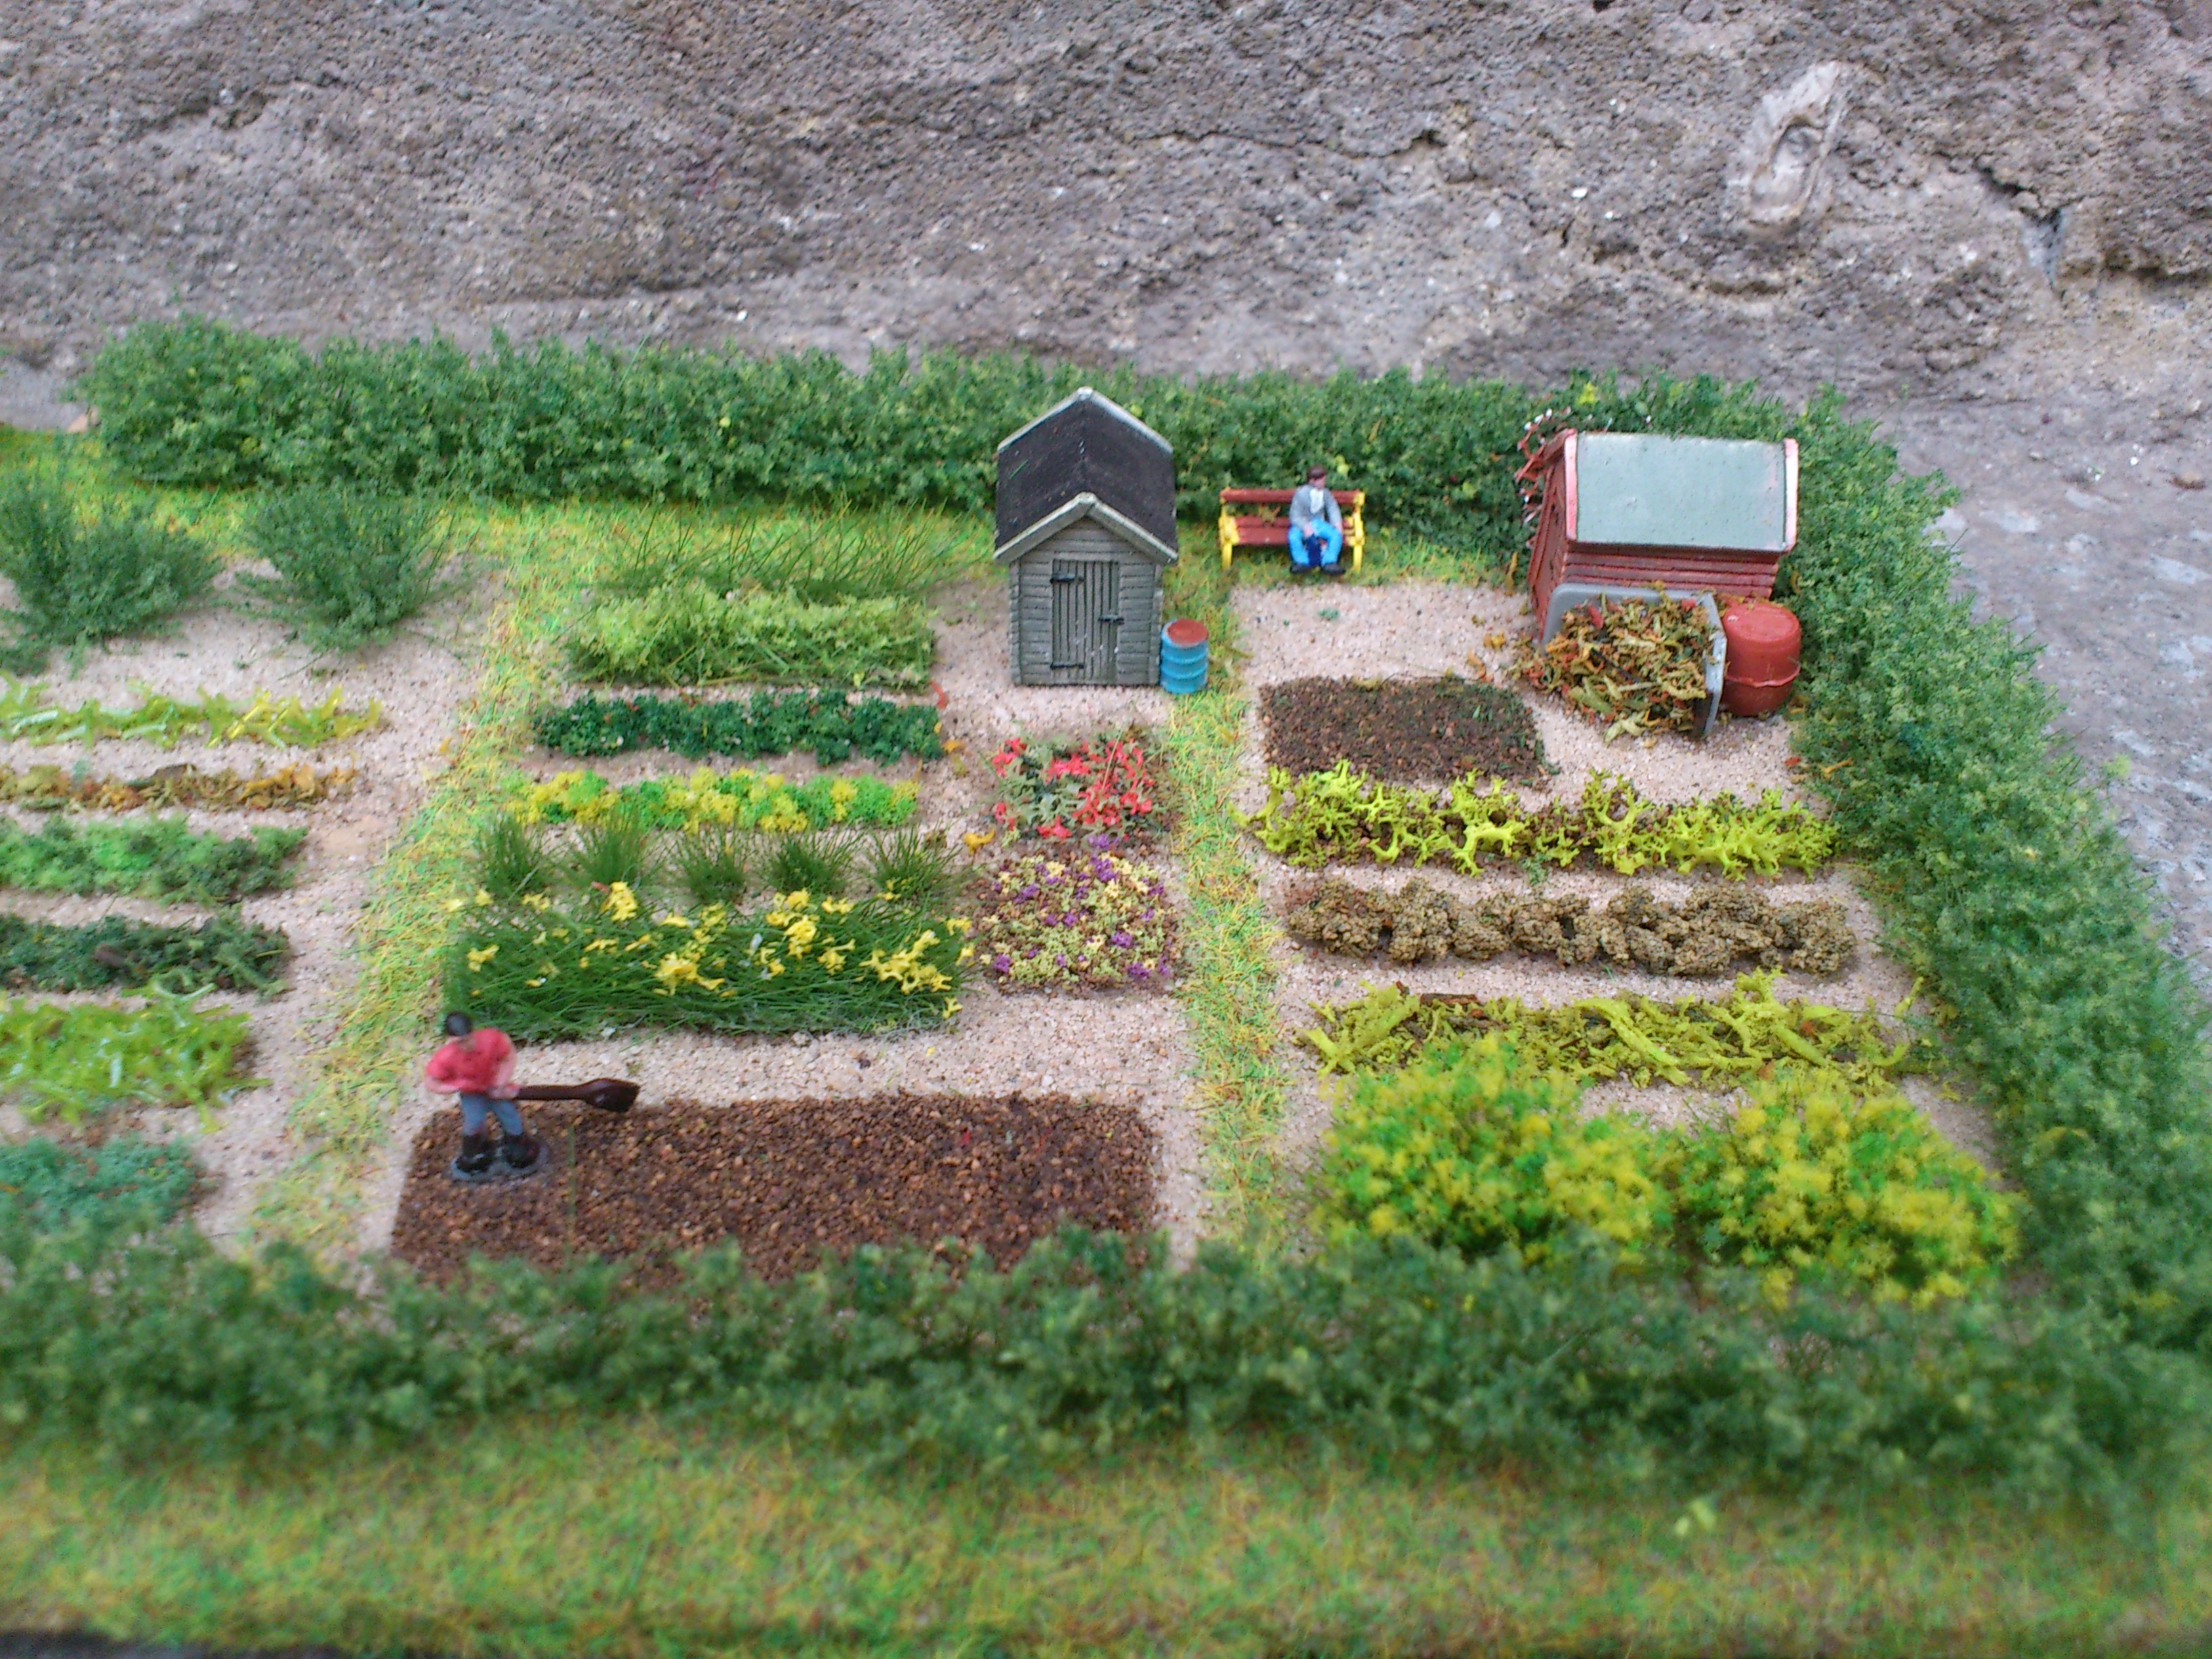 N Gauge Allotment Diorama